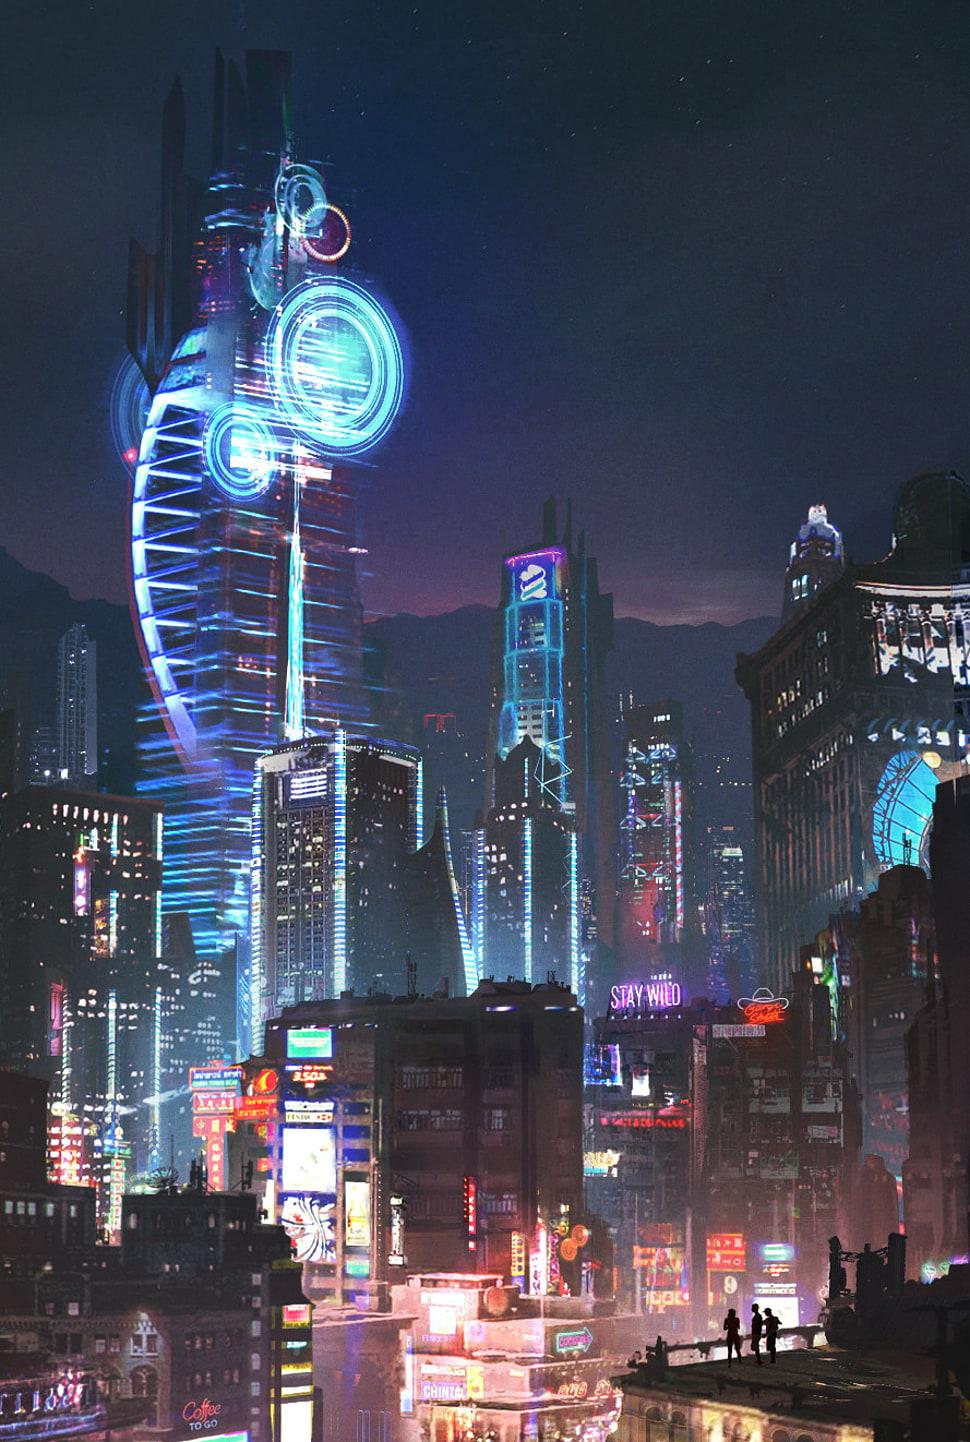 Cyberpunk City Android Wallpapers - Wallpaper Cave